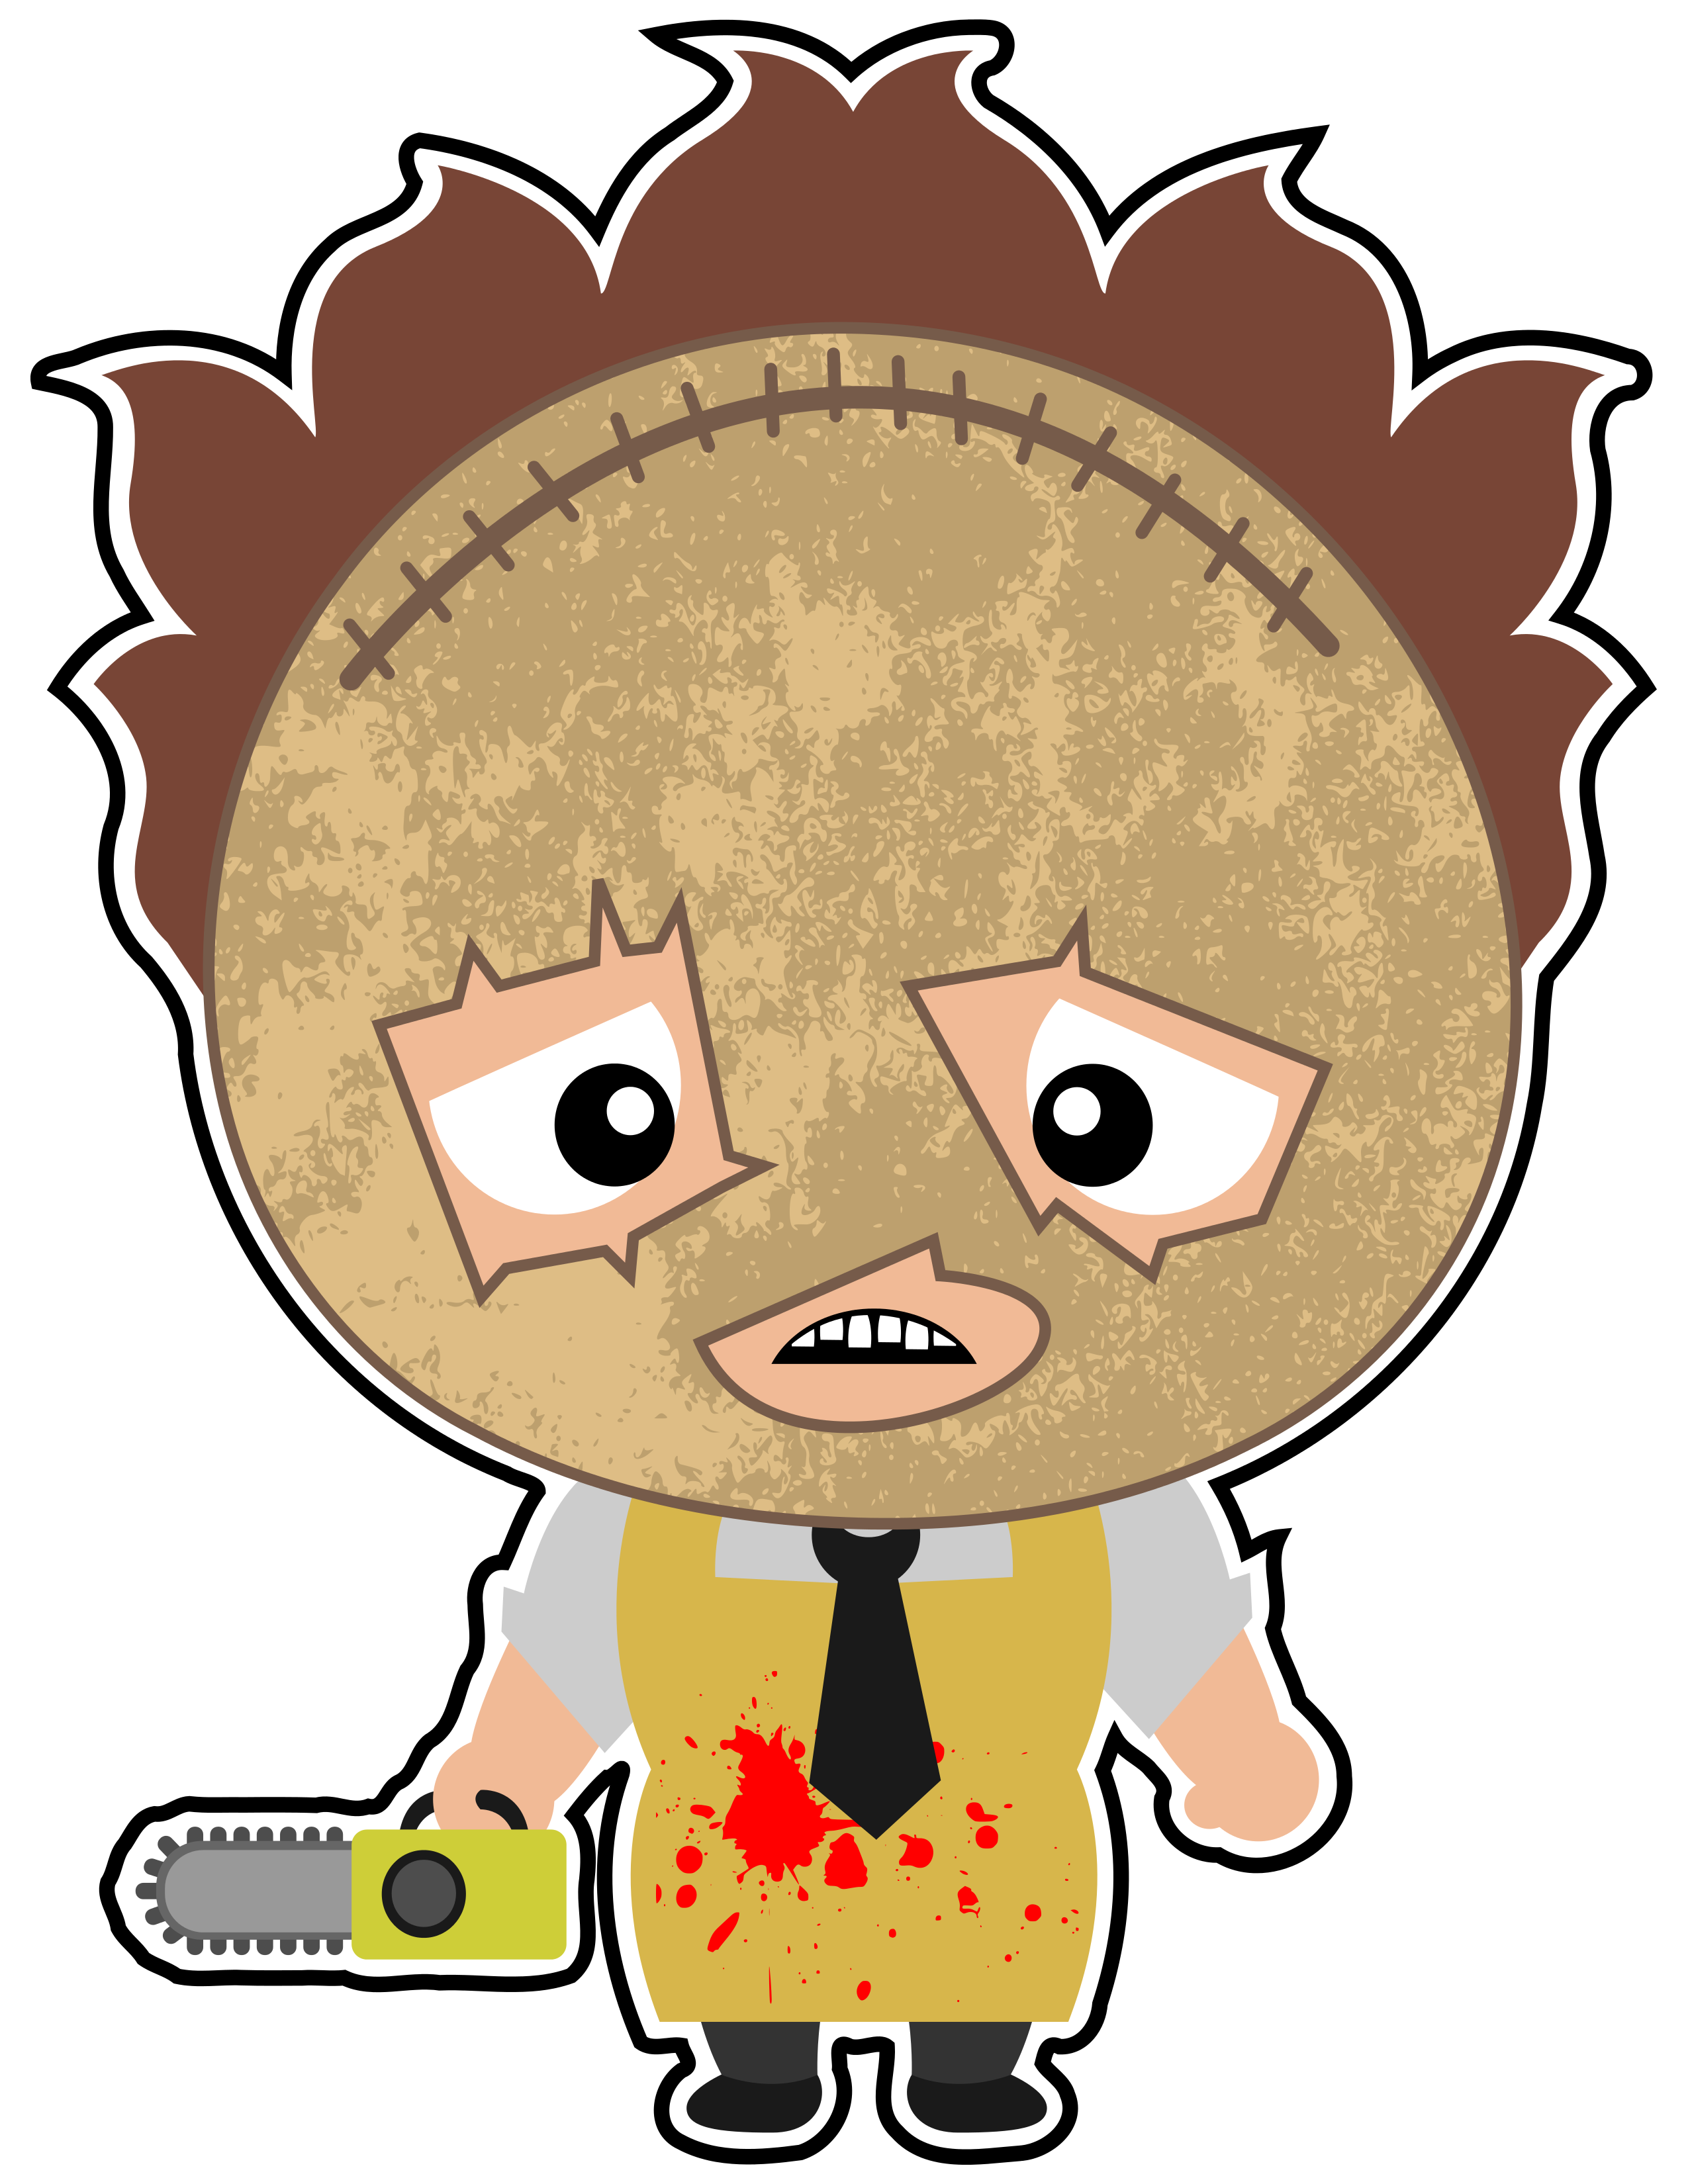 2550x3300 Leatherface In All His Glory. One Of The Scariest Movies Of All